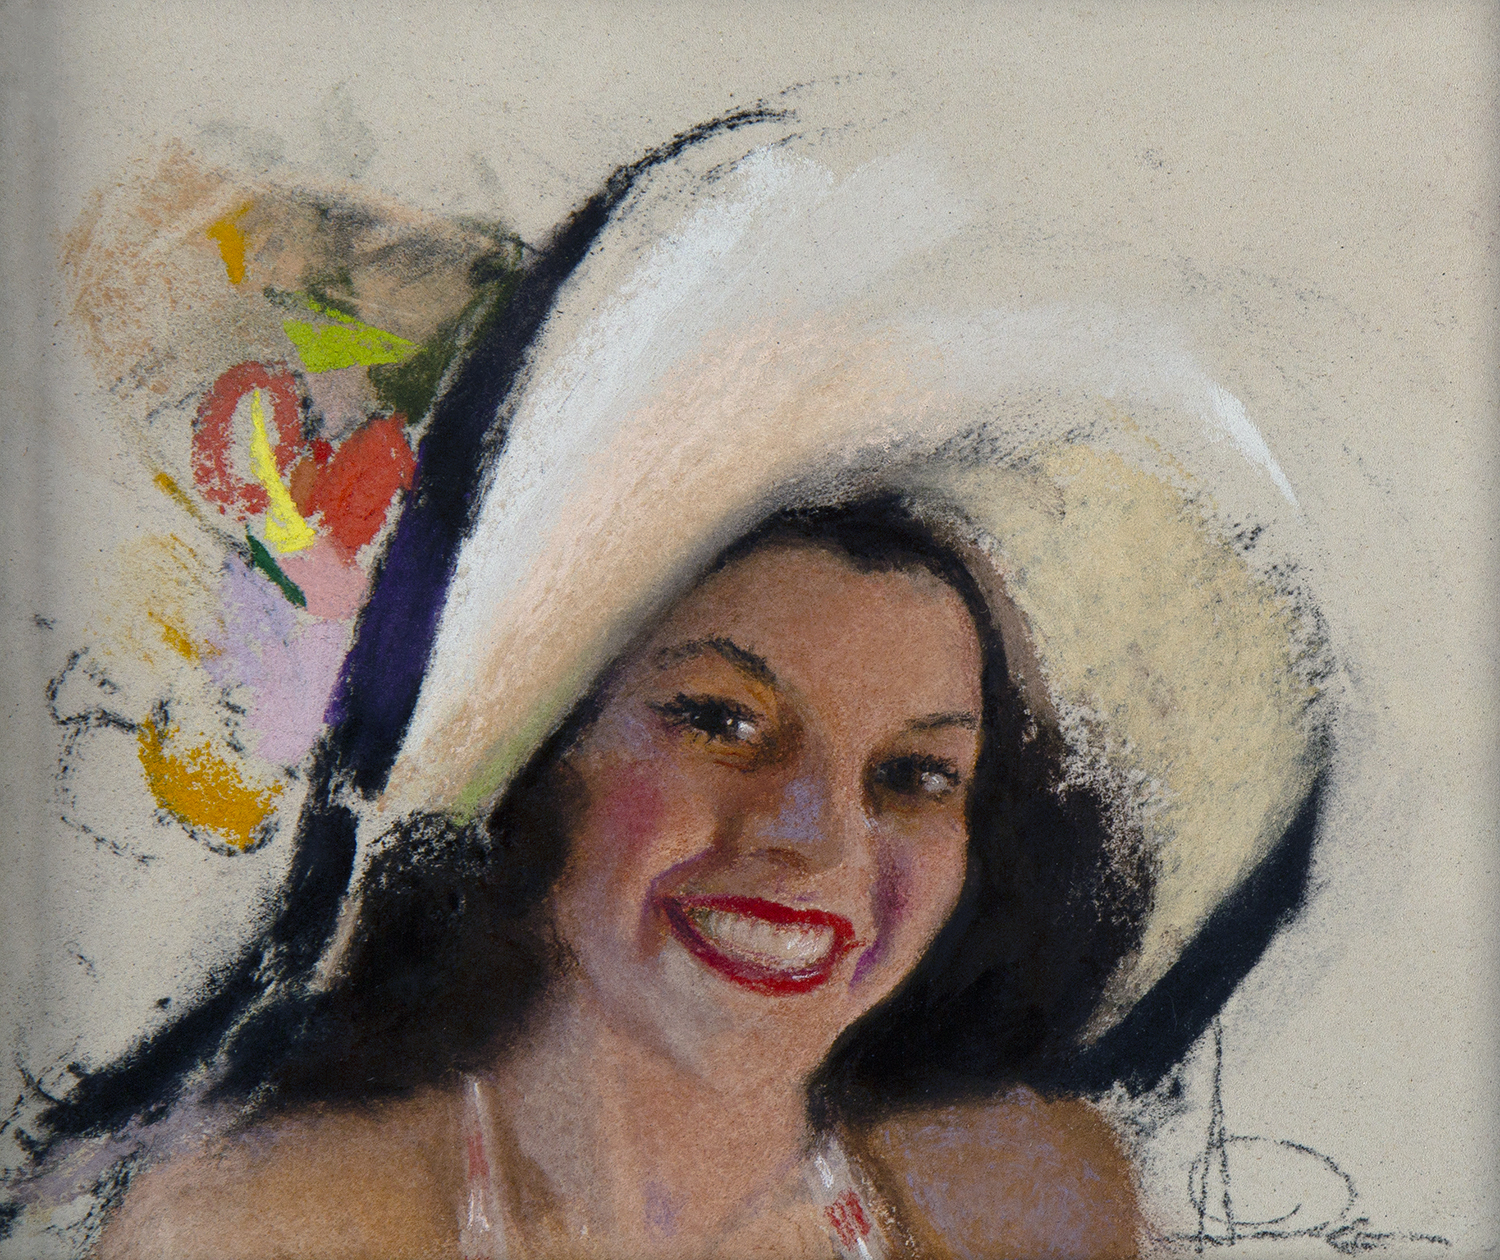 Full view of thumbnail sketch featuring pin-up model Jewel Flowers wearing a white wide brimmed hat adorned with flowers.